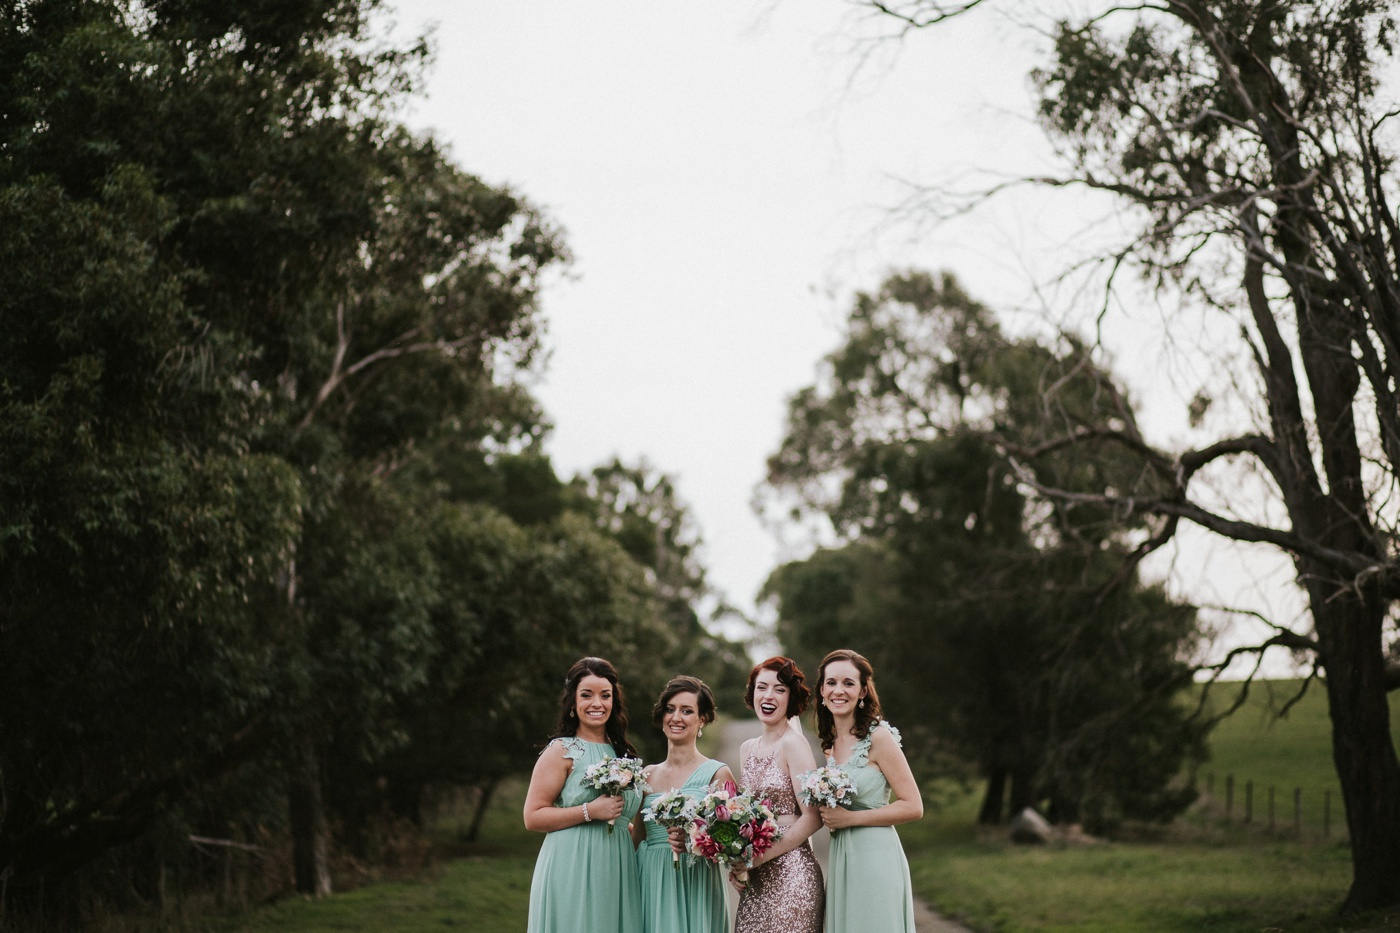 Emma&Morgan_Melbourne-Vintage-Elegant-Fun-Quirky-Yarra-Valley-Vineyard-Wedding_Melbourne-Wedding-Photography-67